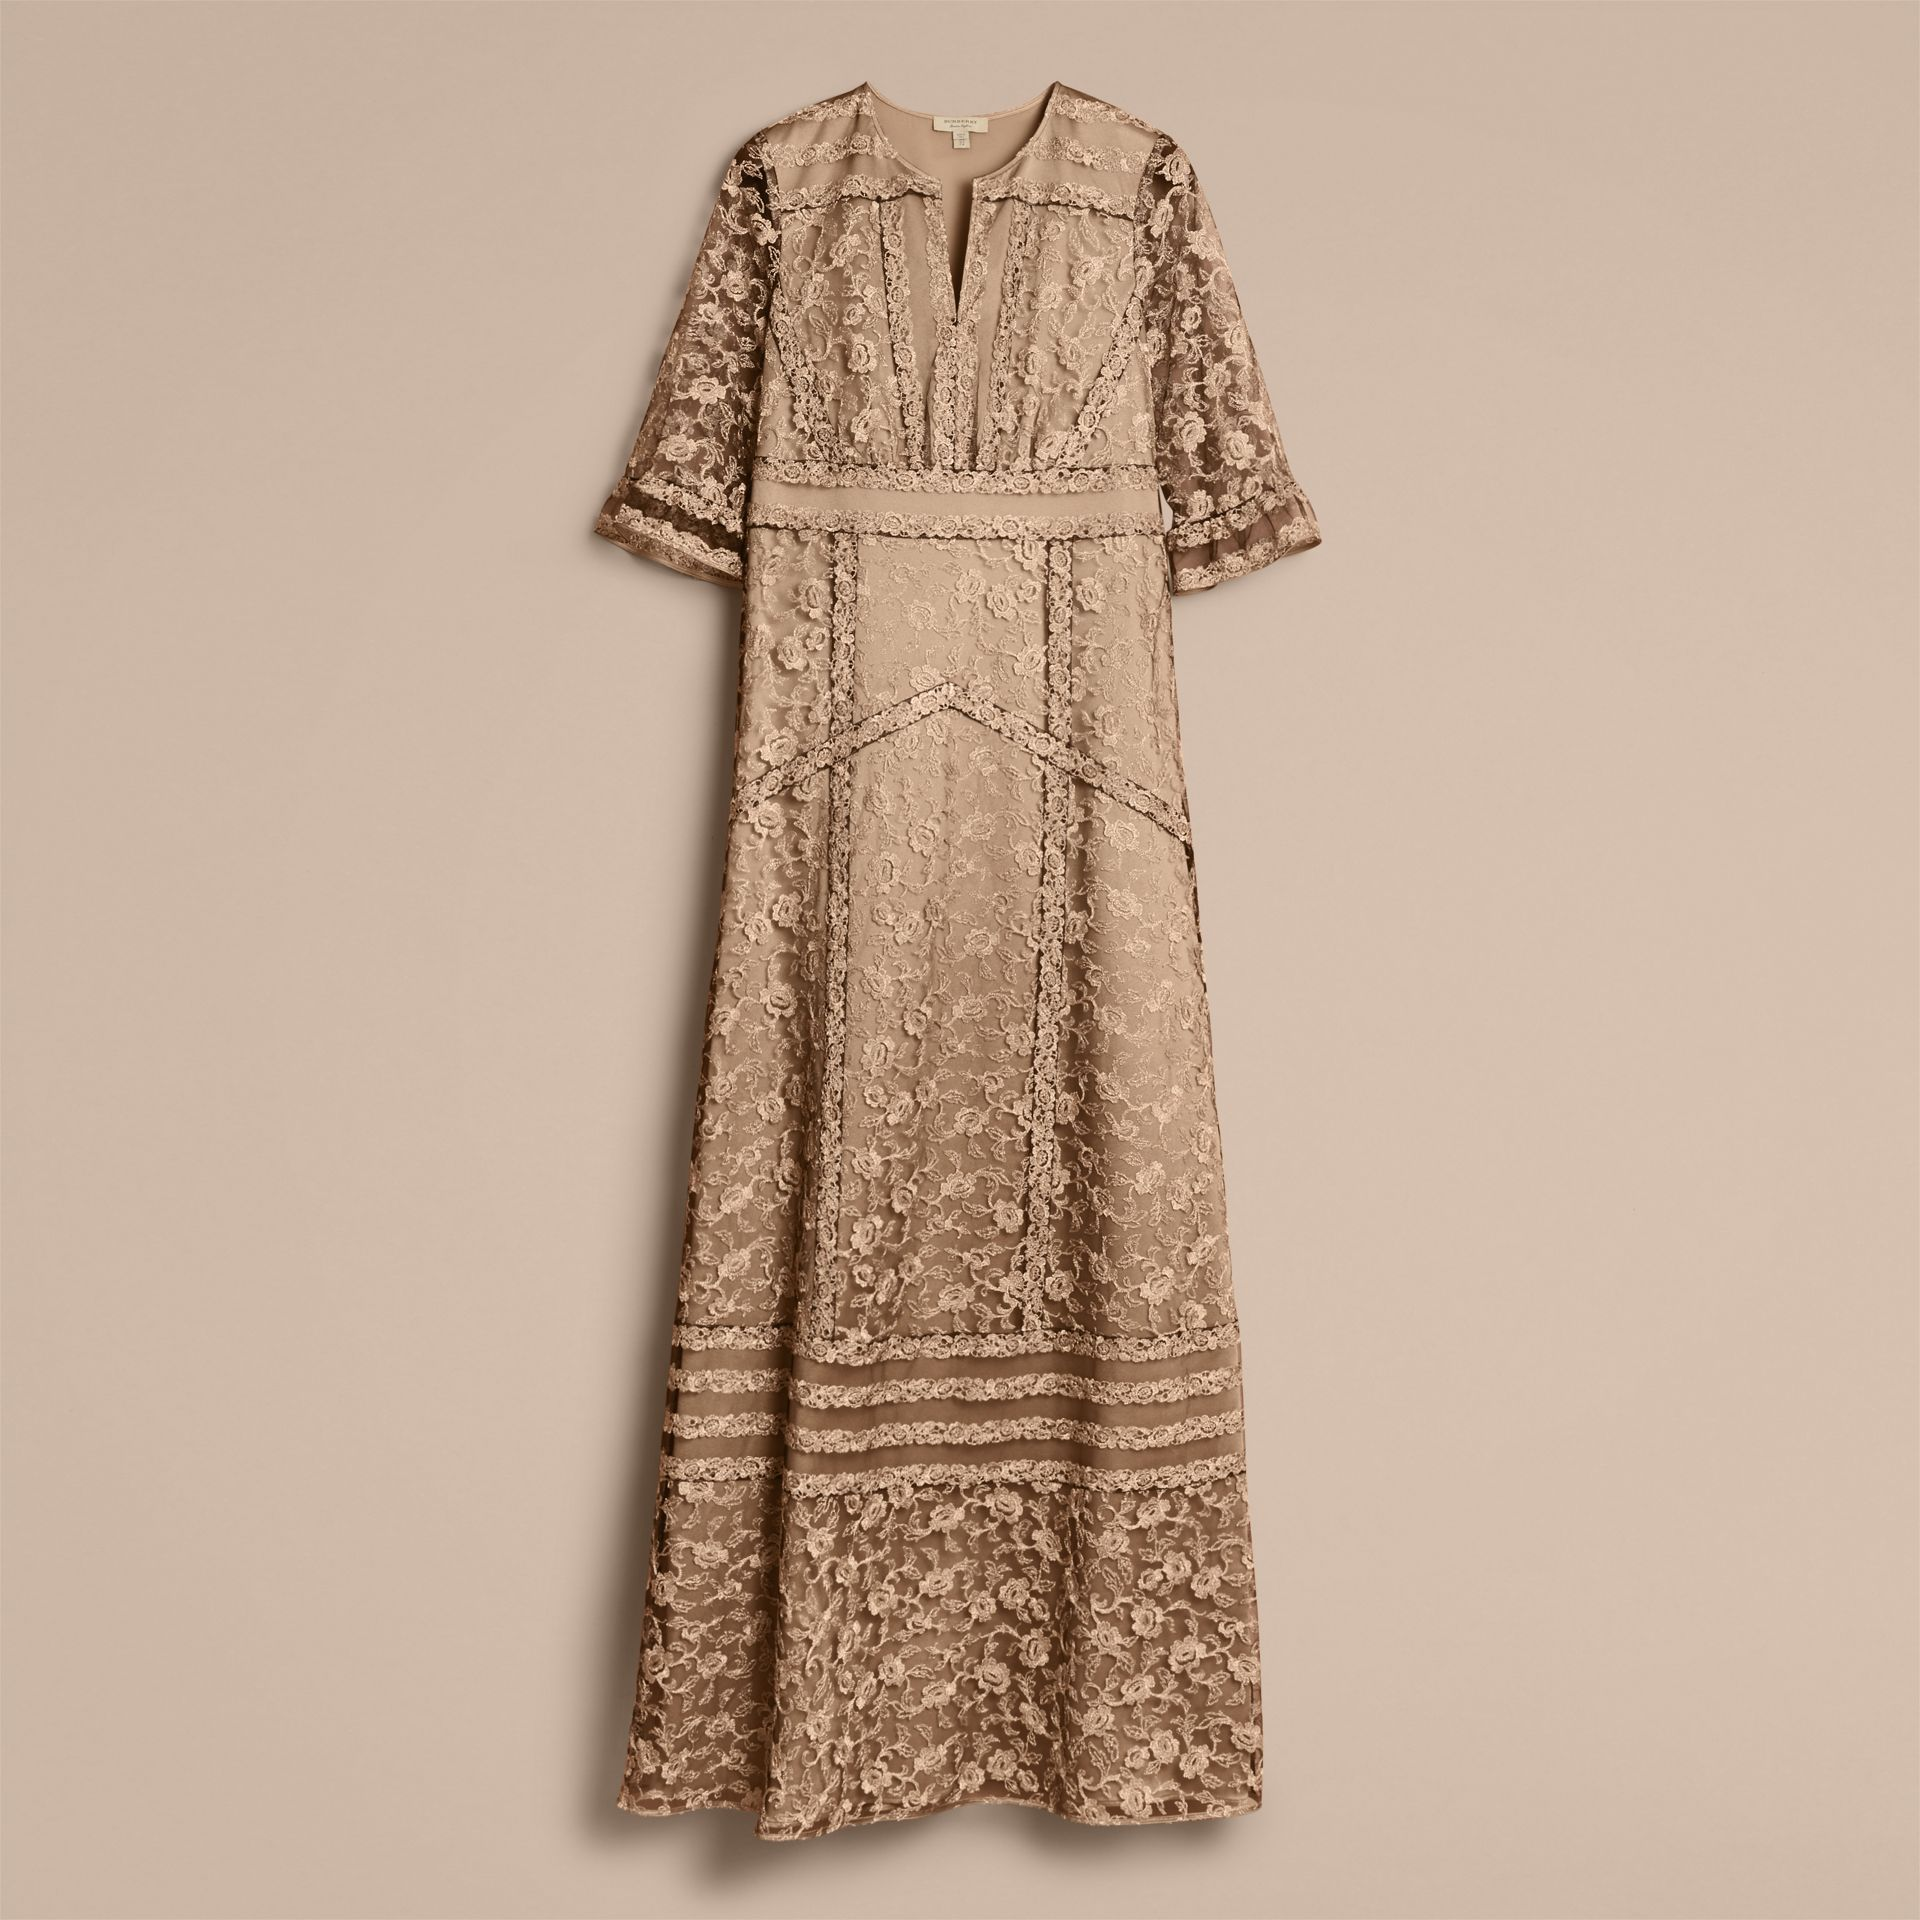 Floral Lace Tulle Dress in Gold - Women | Burberry Hong Kong - gallery image 4